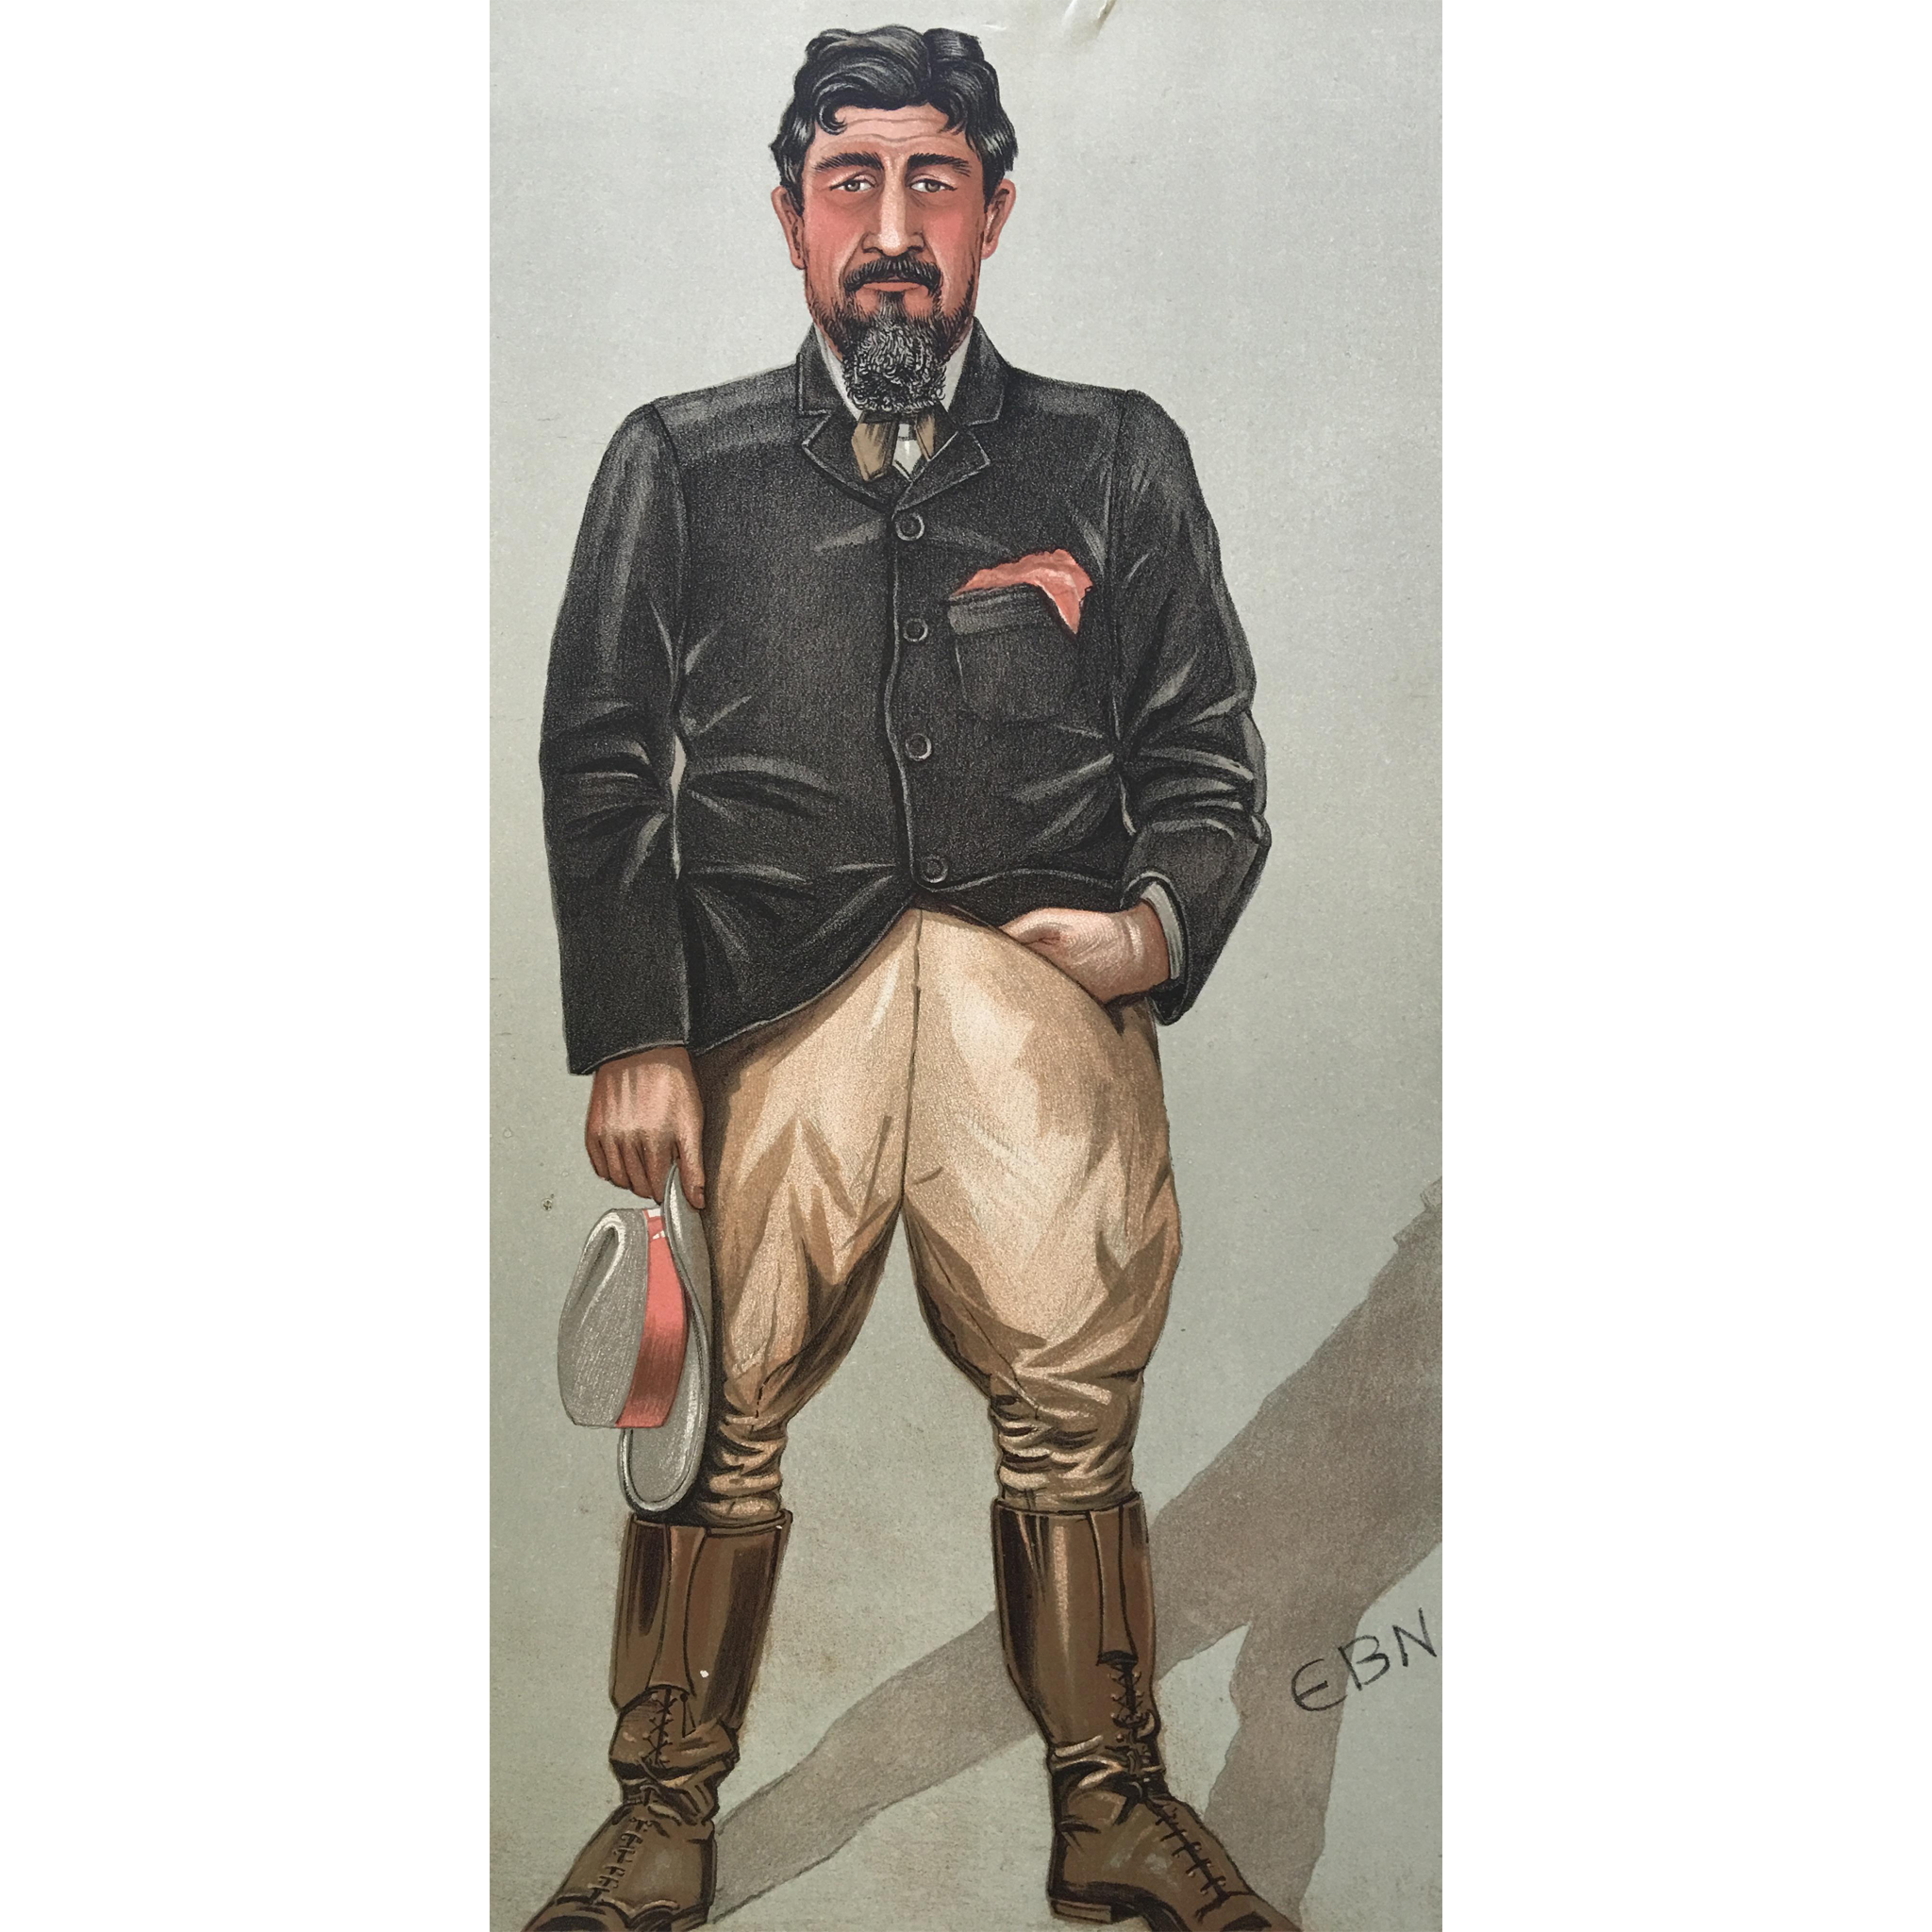 1902 Original Vanity Fair Print - Boer War / Big Game Hunter - General Christian De Wet